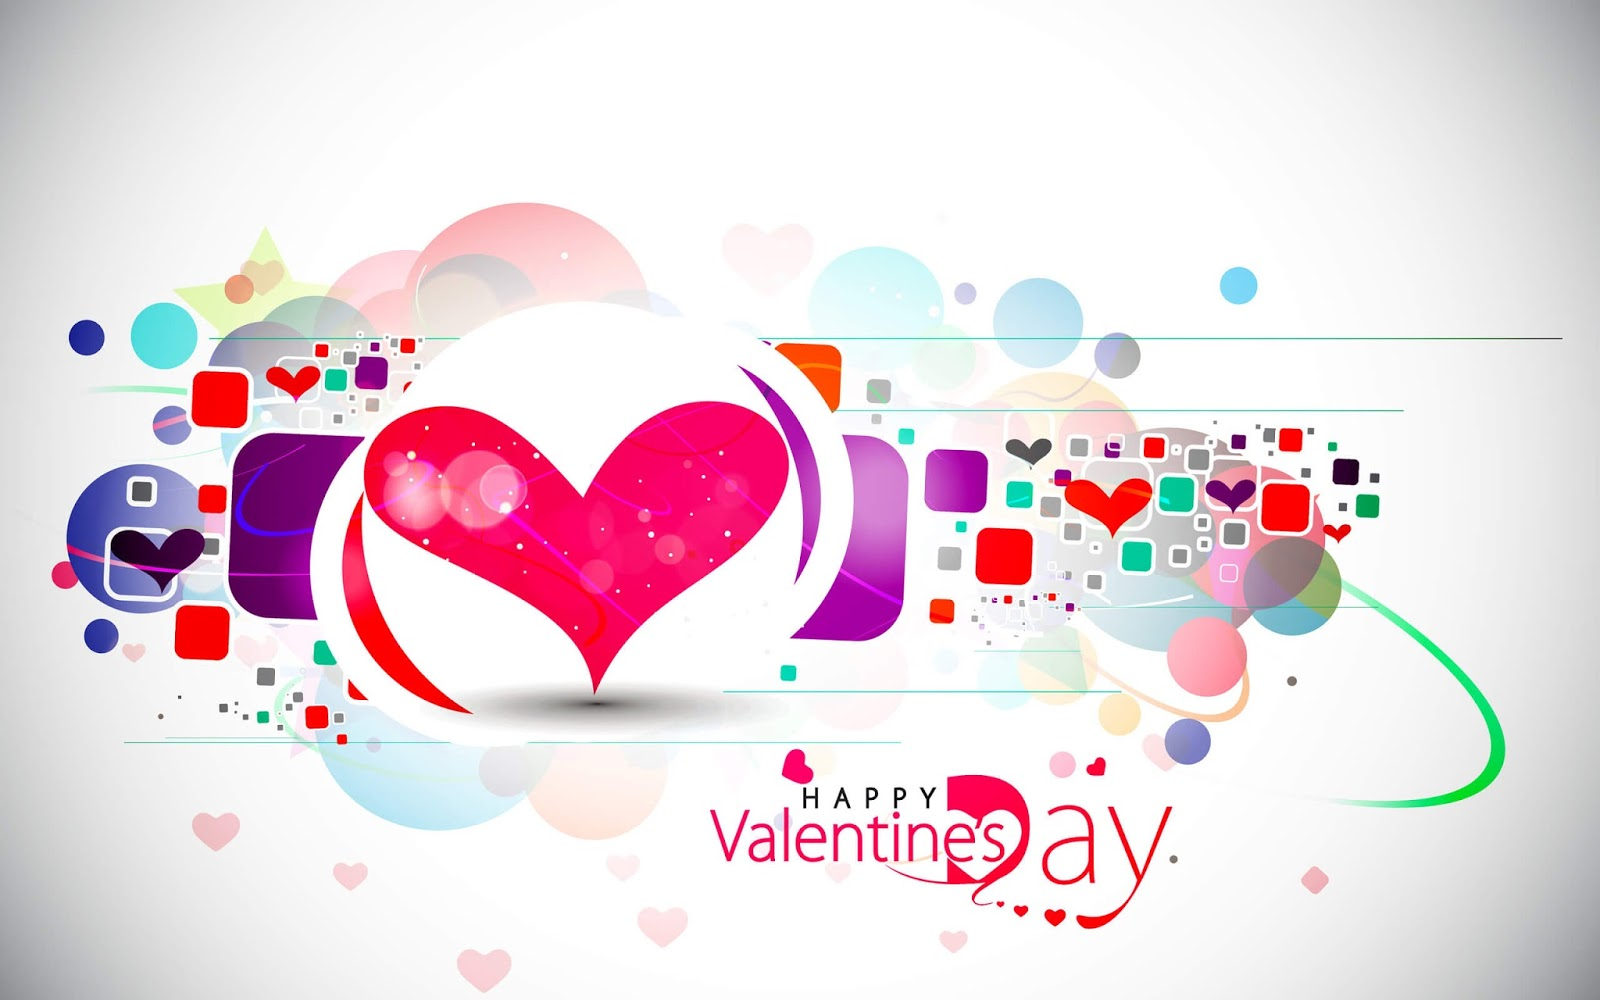 Happy Valentines day Stylish Attractive Wallpaper Image